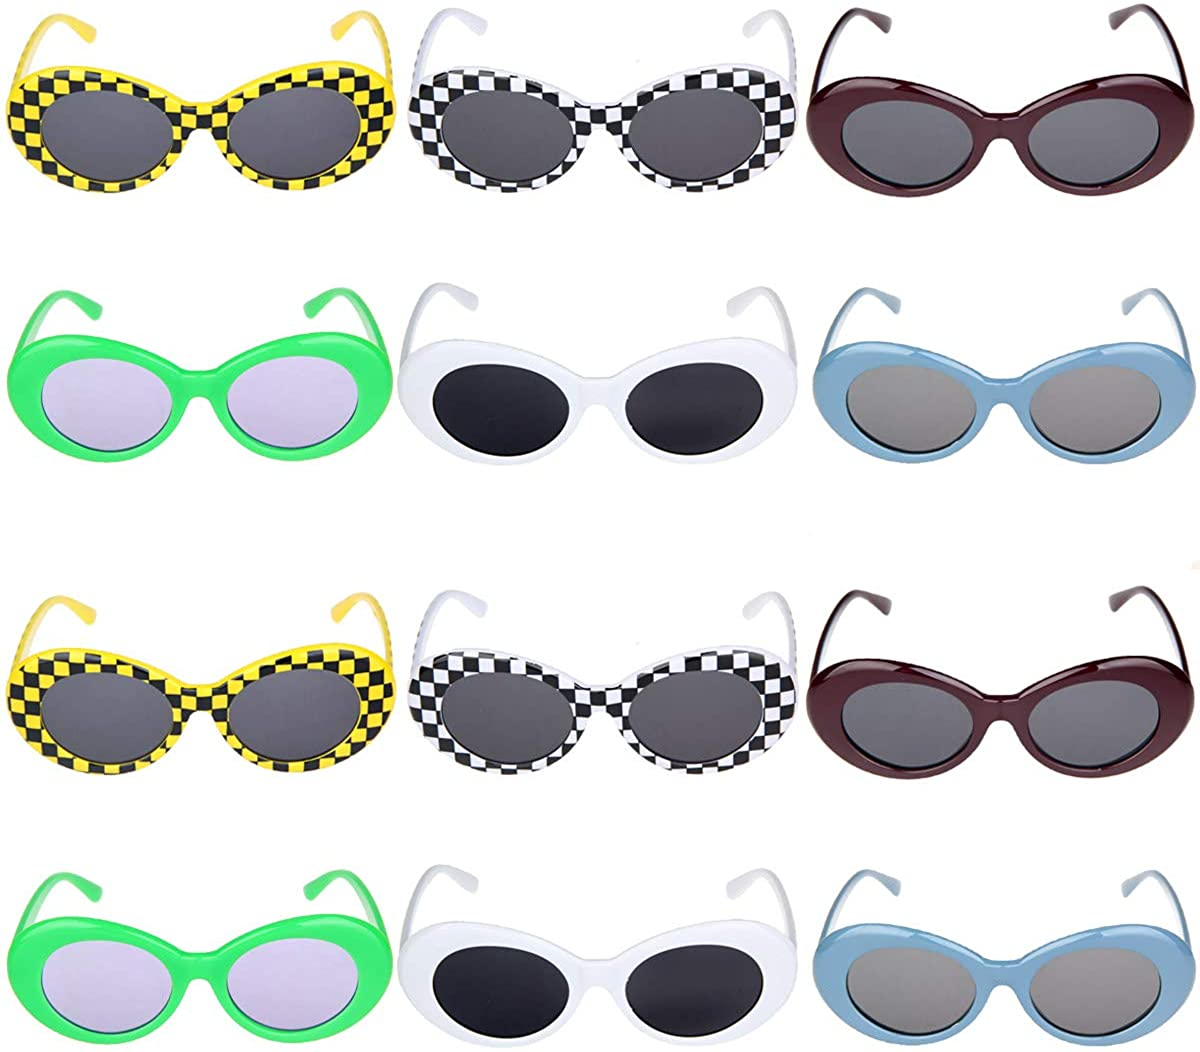 12pcs Set Funny Glasses Novelty Party Costume Eyewear Hawaiian Luau Tropical Sunglasses for Kids & Adults